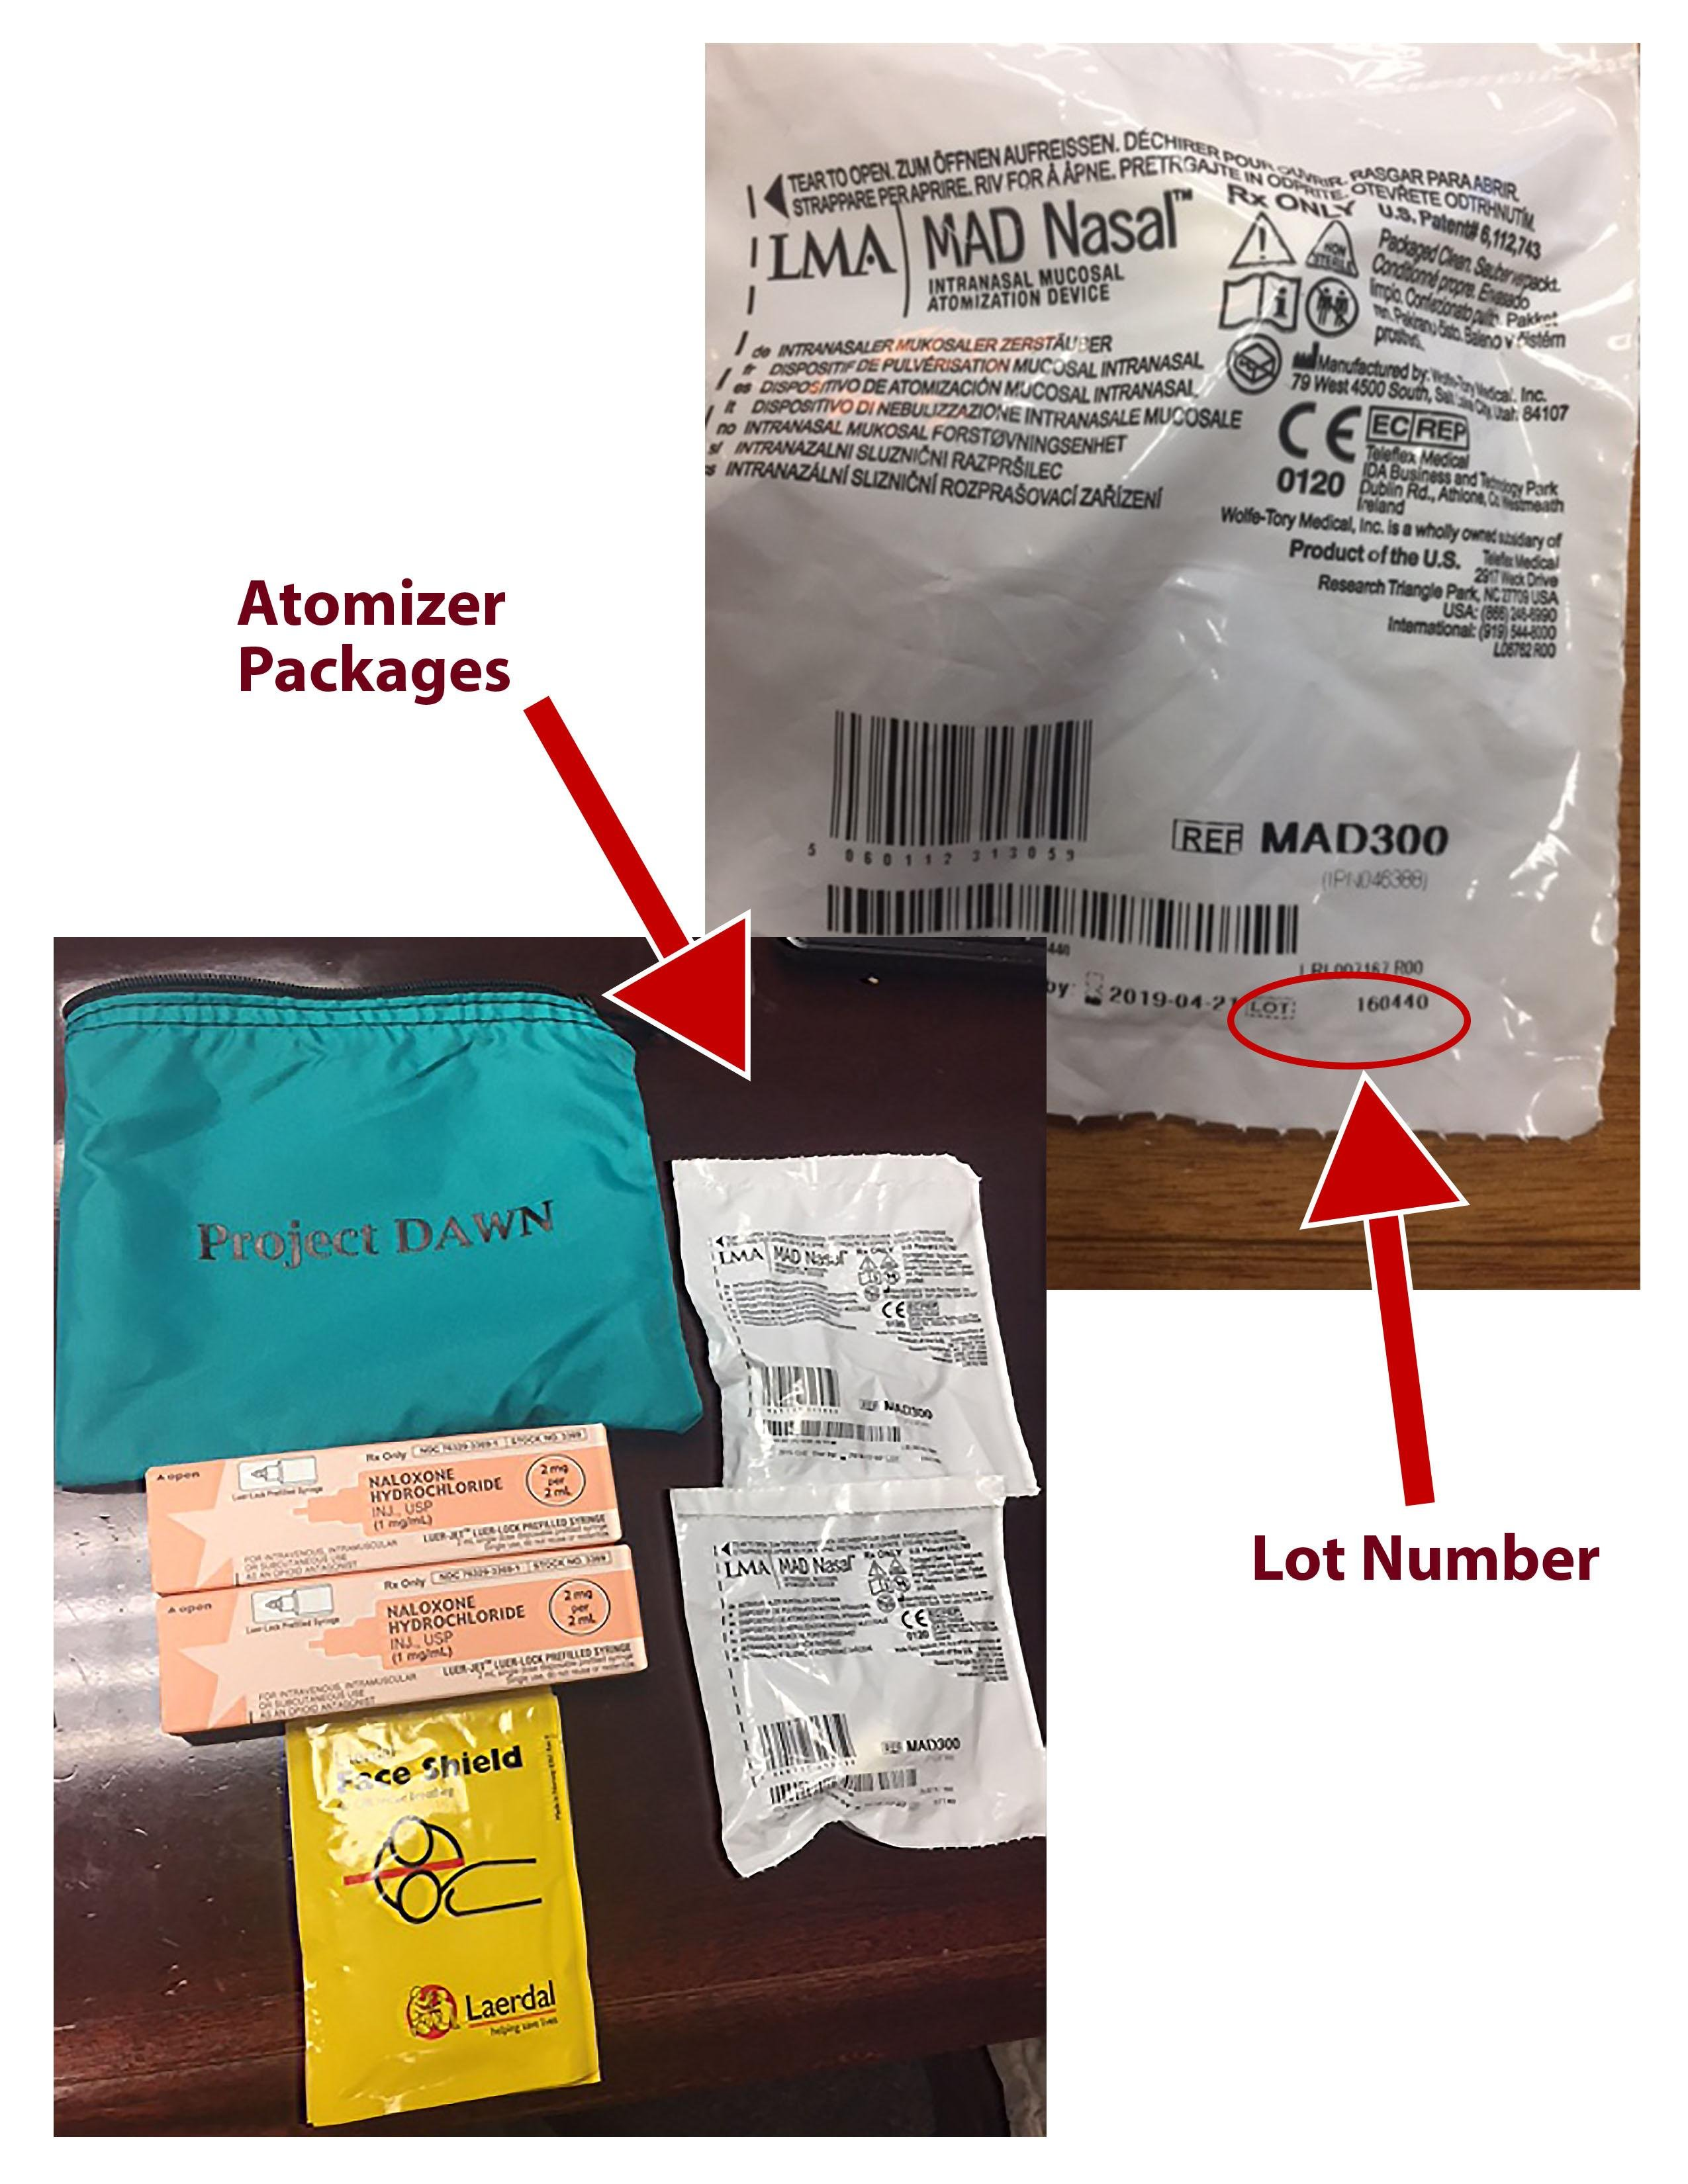 Alert issued after company recalls overdose antidote device